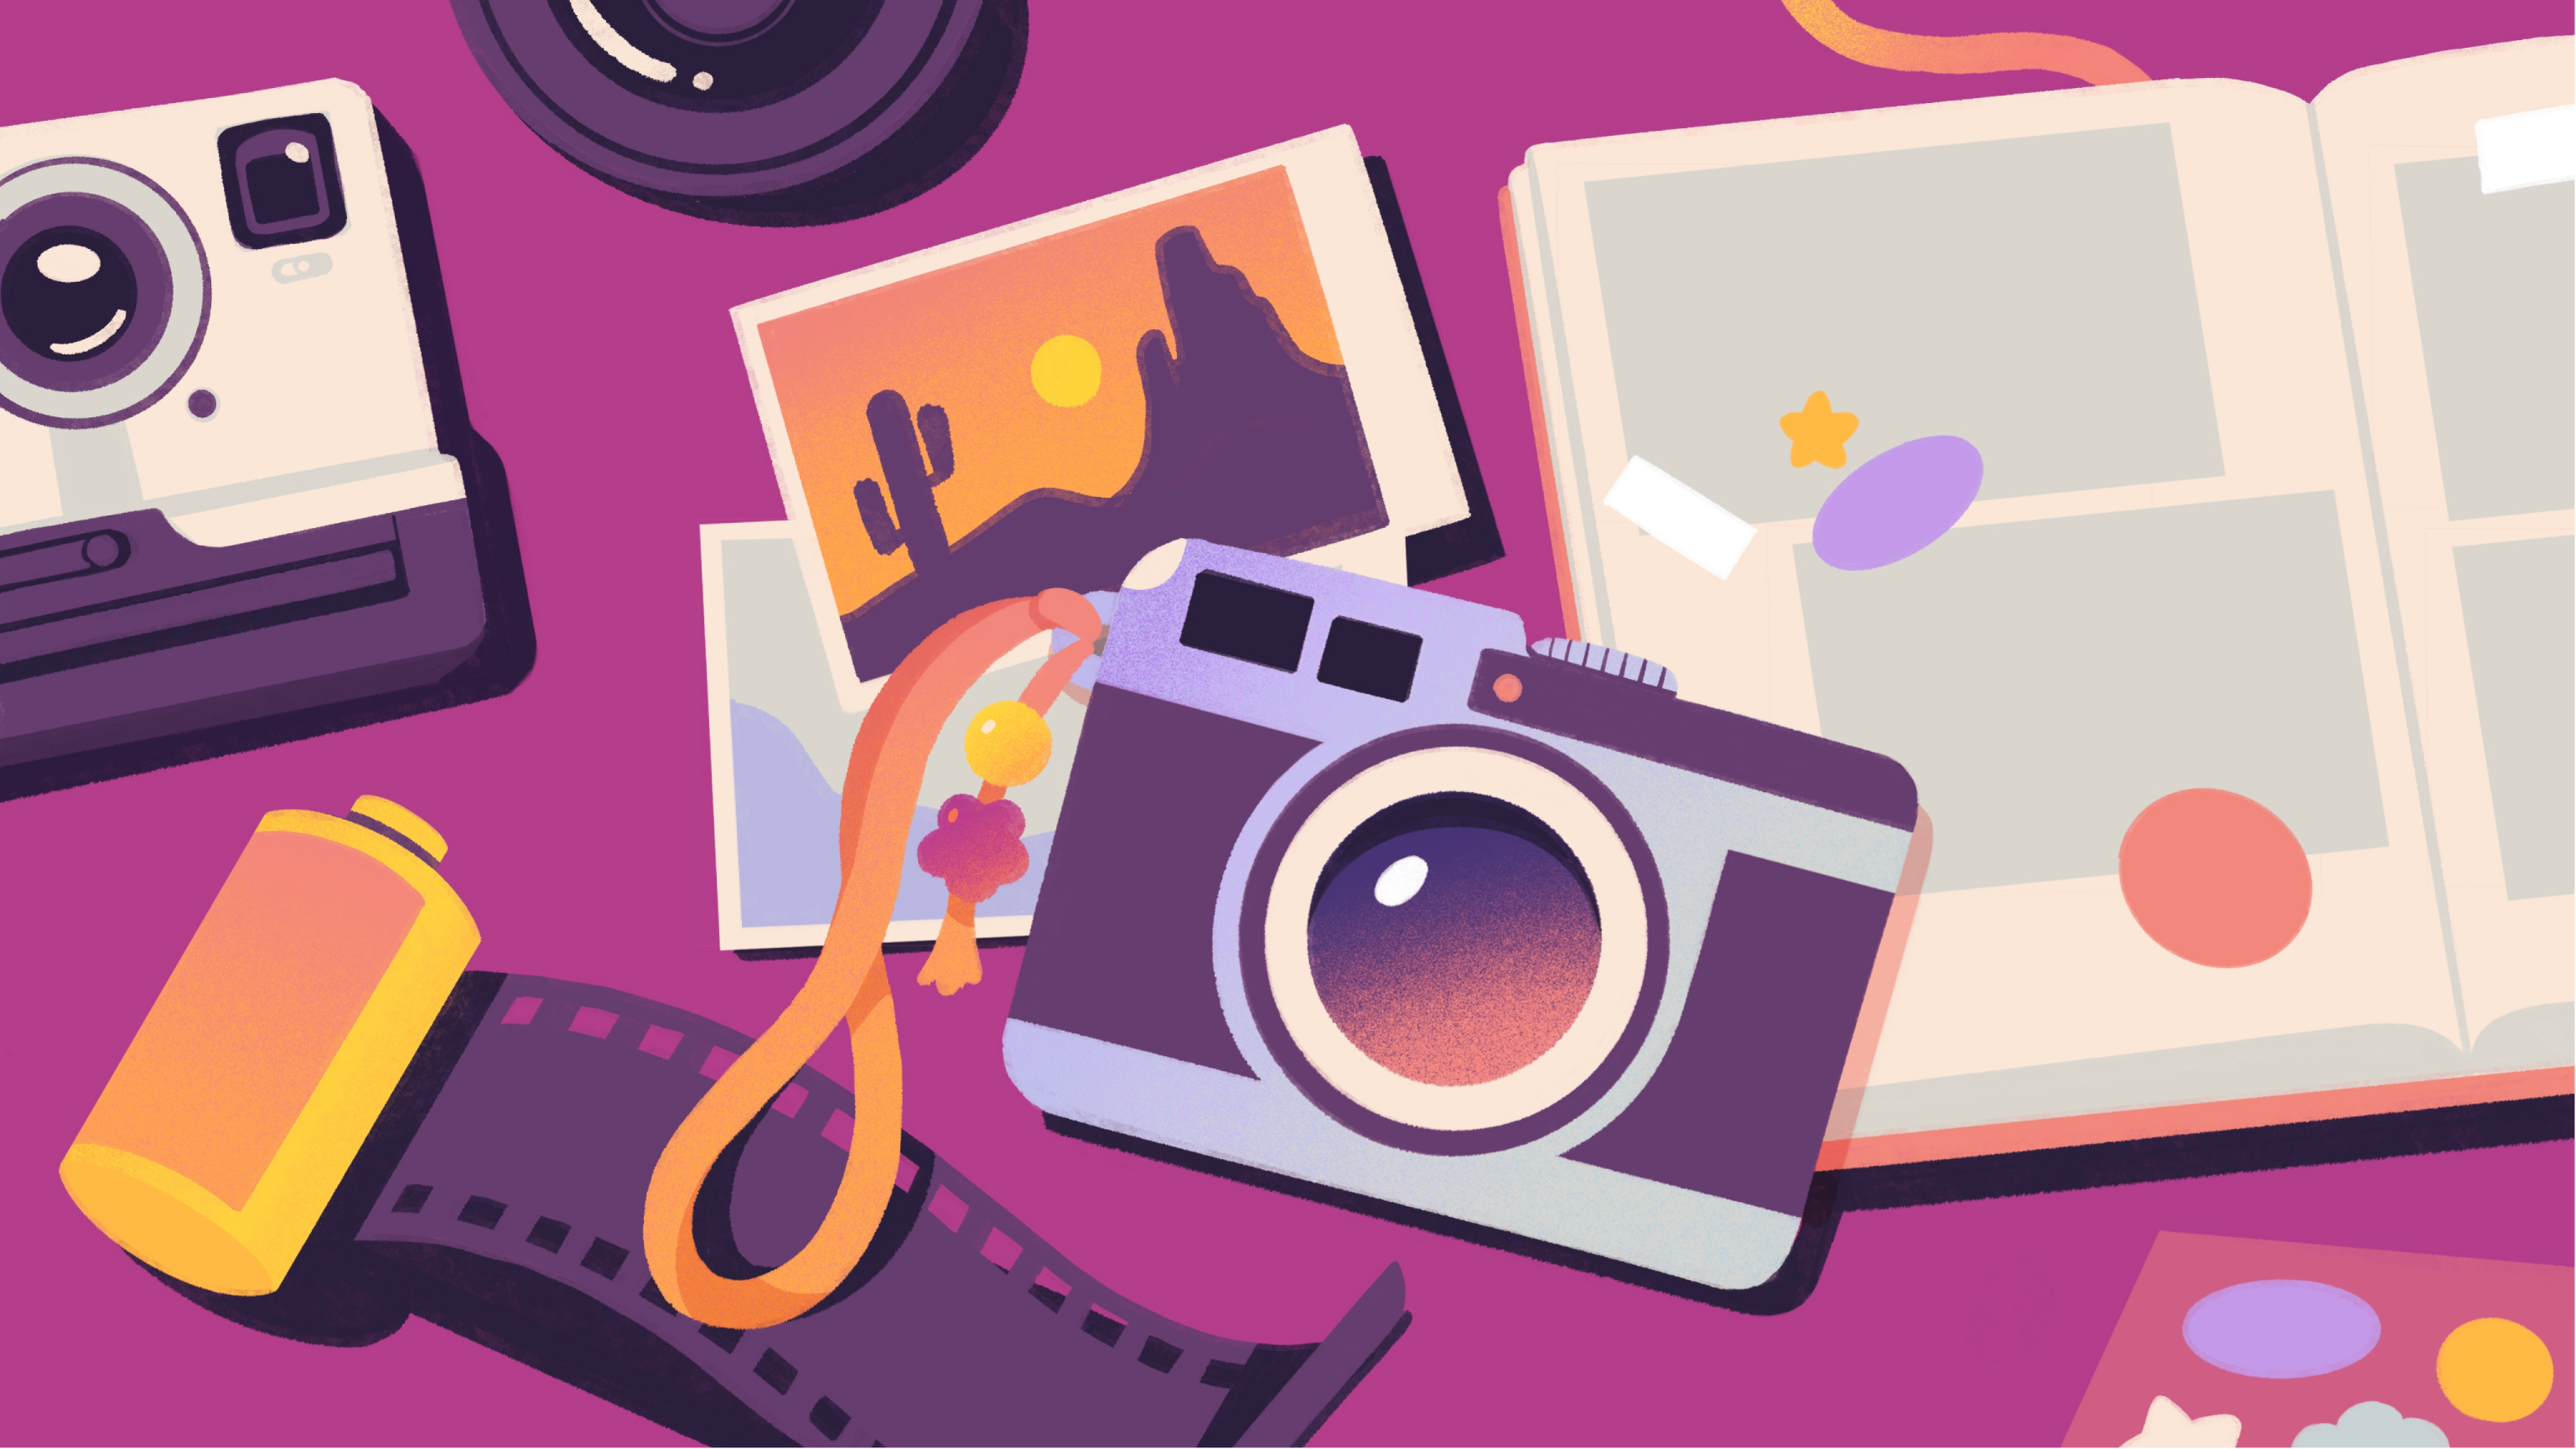 A collection of photography supplies: Cameras, film, photographs, photo book, a lens, stickers